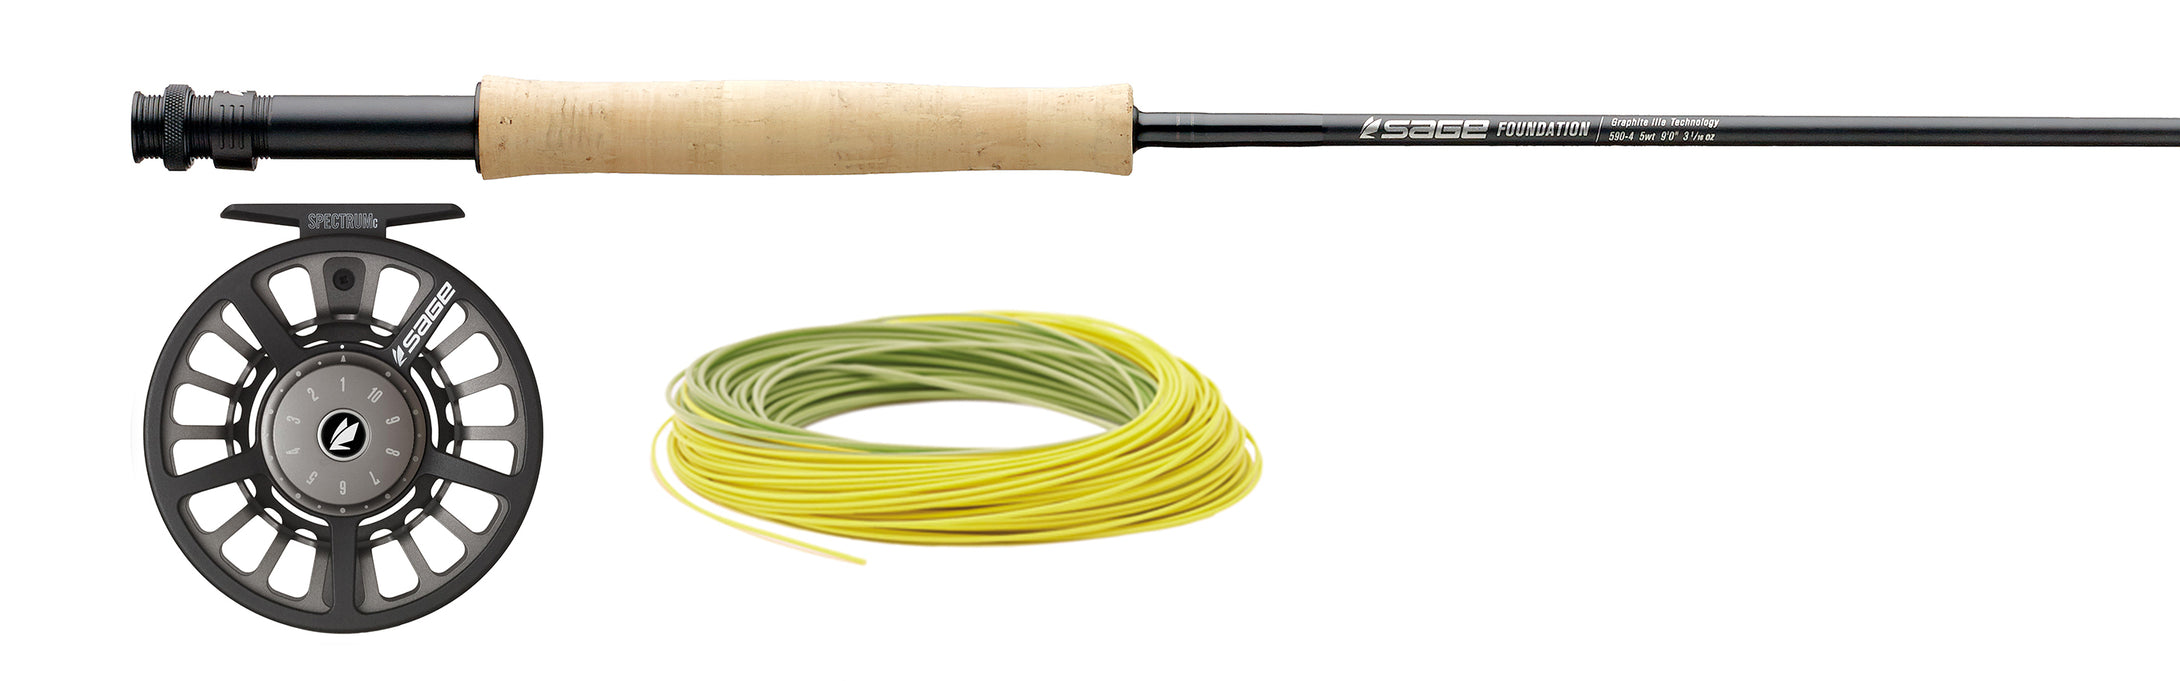 Sage Foundation Outfit - Fly Rod and Reel Outfit Combo with Fly Line! SAVE 20%